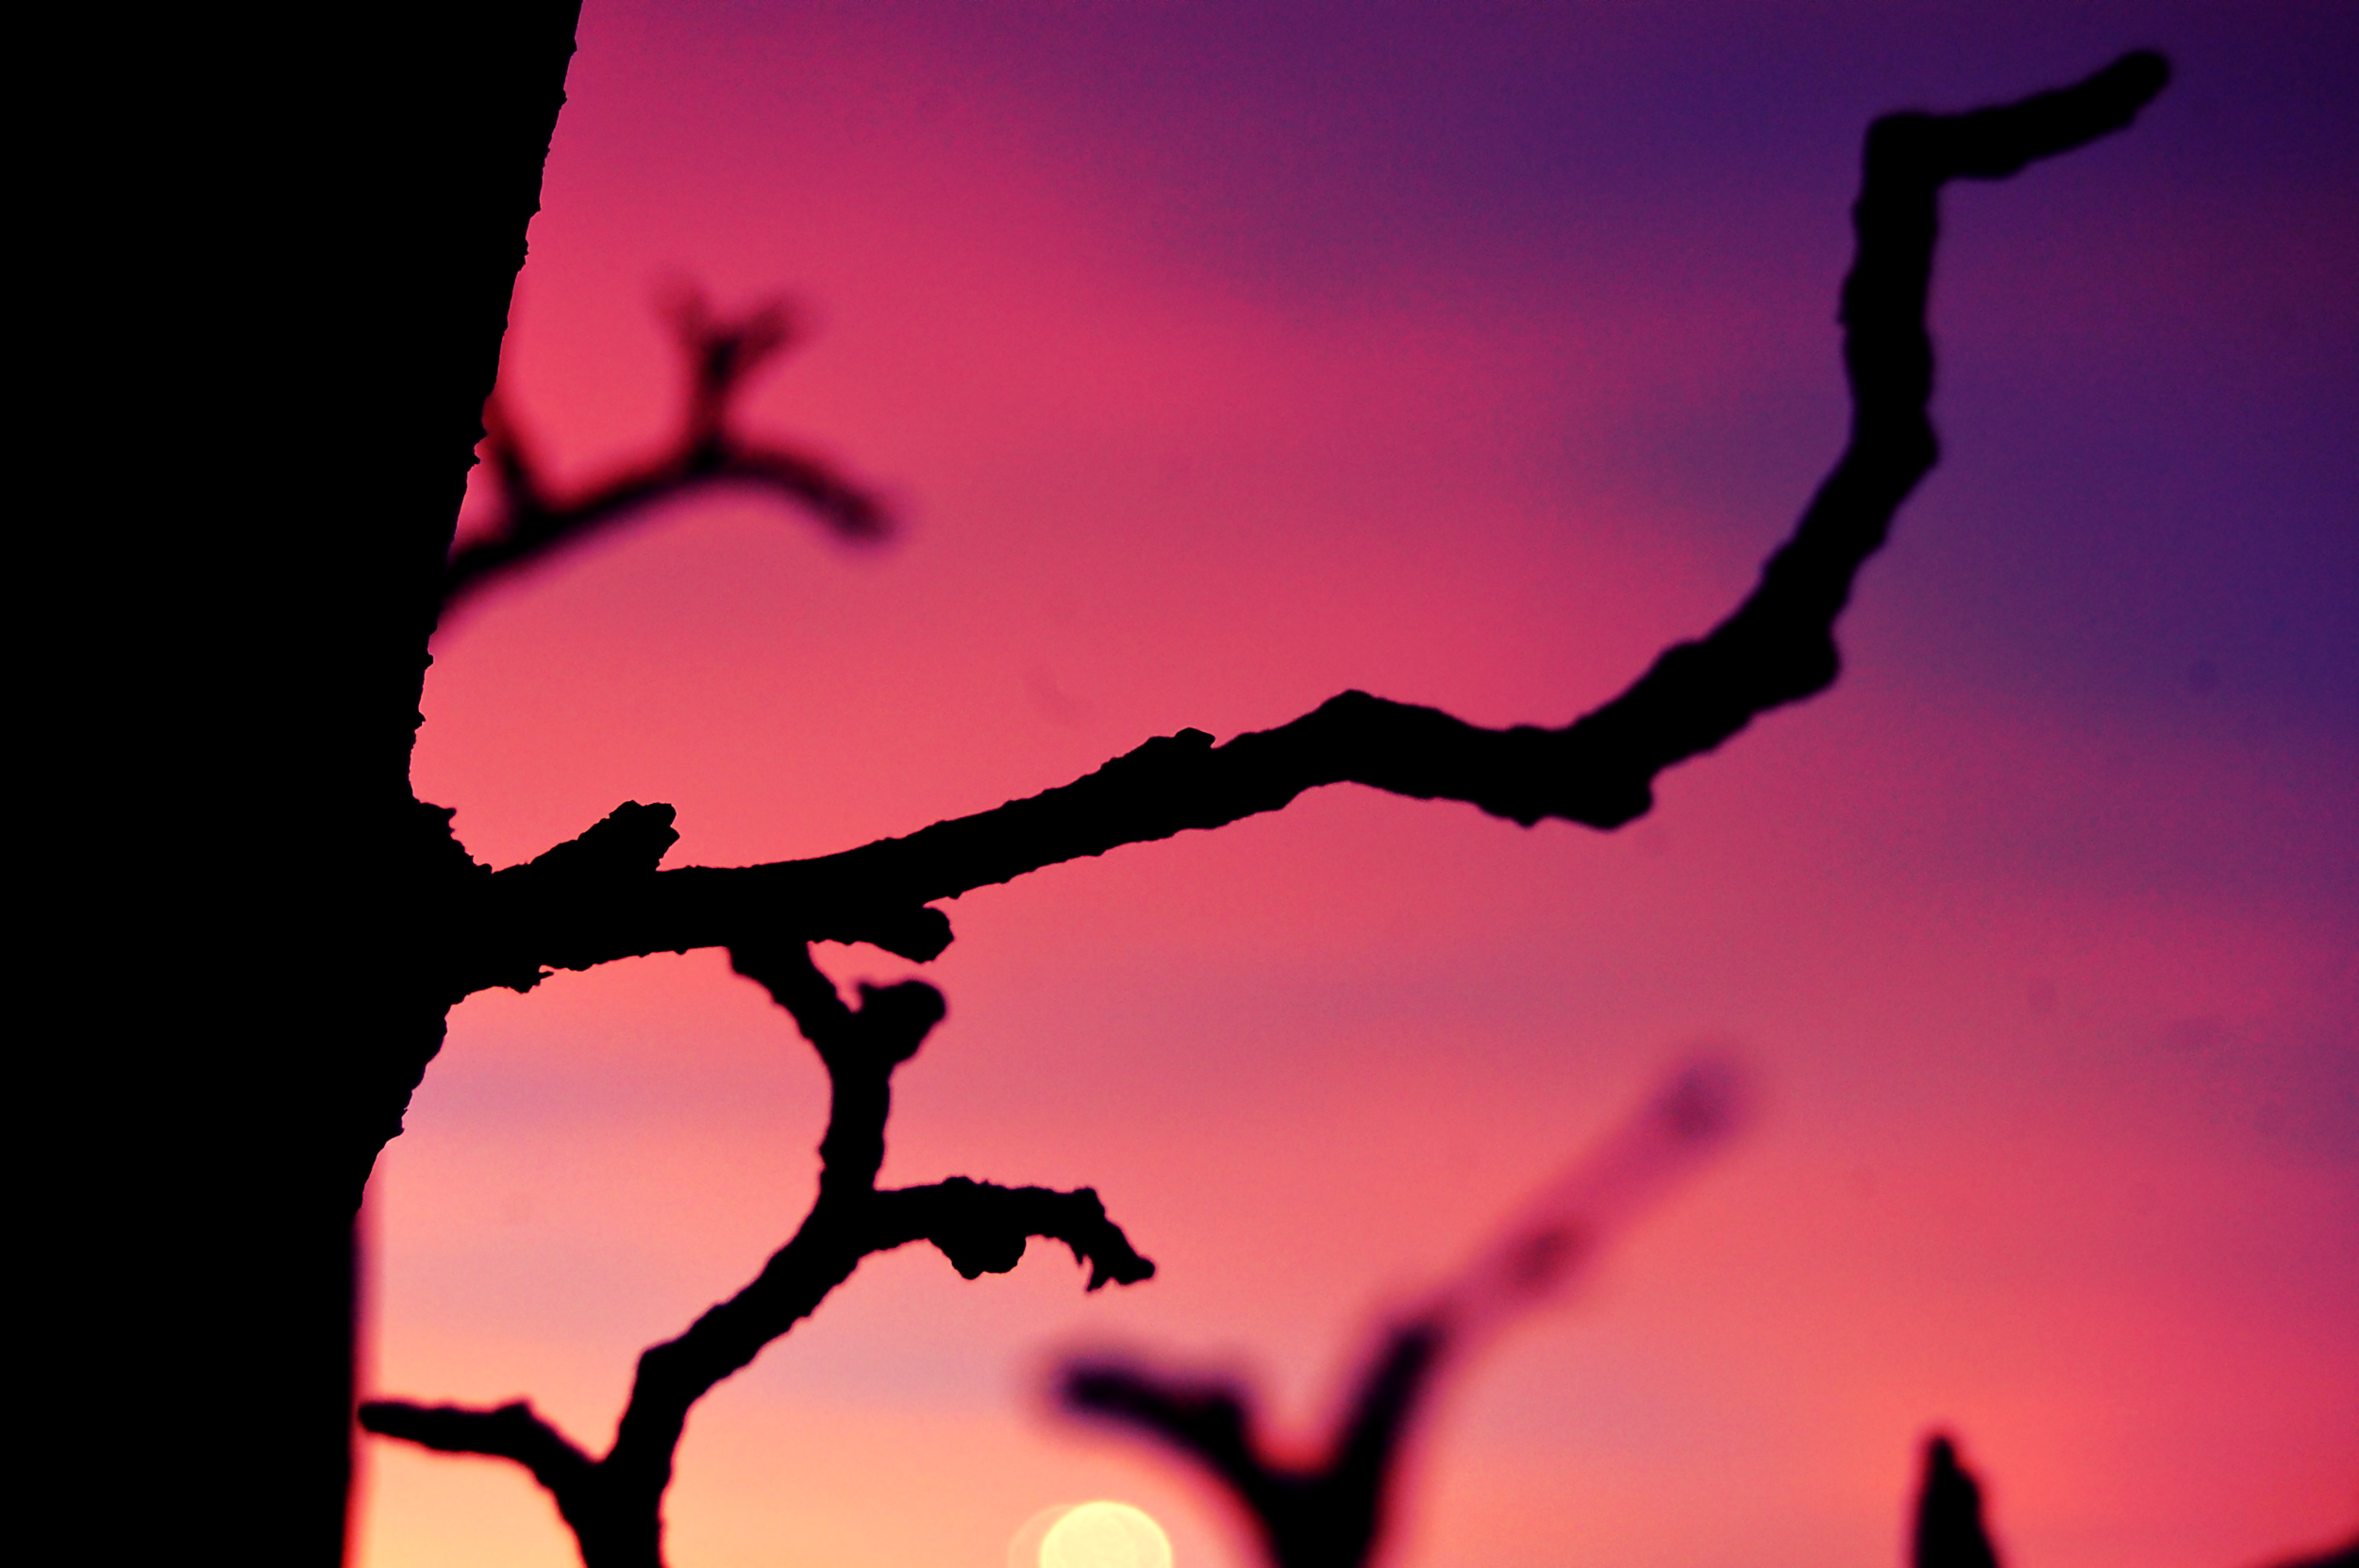 A crooked branch against the sky.